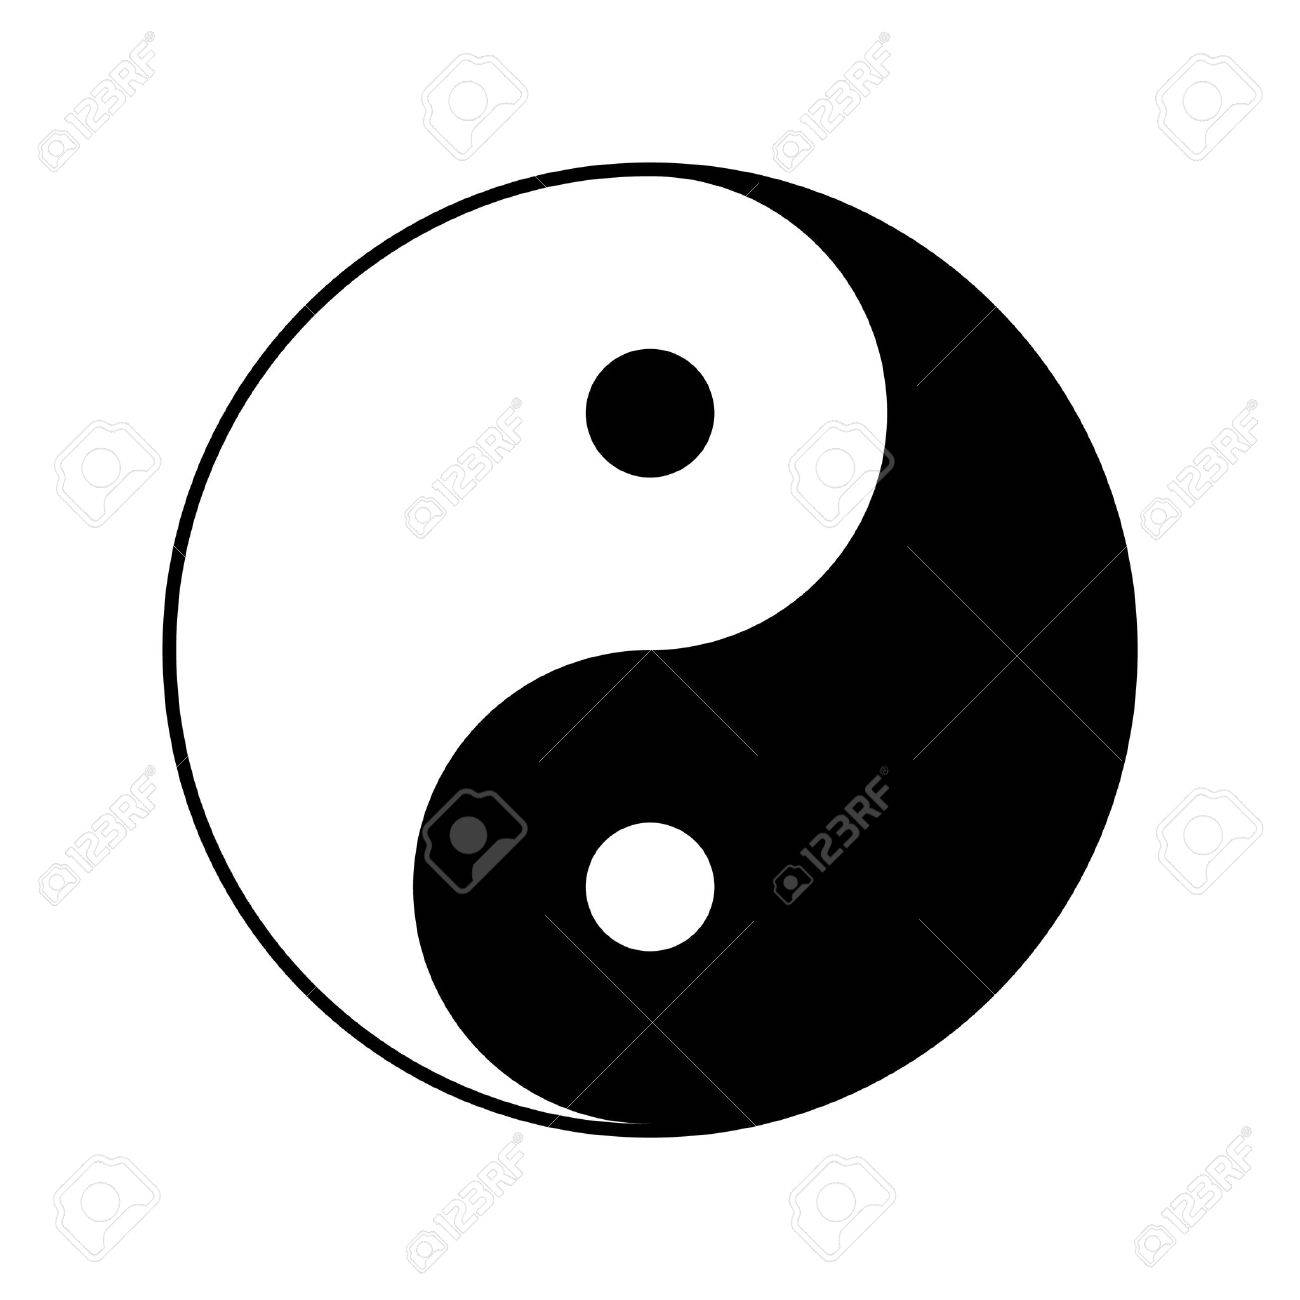 yin and yang symbol vector illustration royalty free cliparts rh 123rf com yin yang symbol vector free download yin yang symbol vector free download